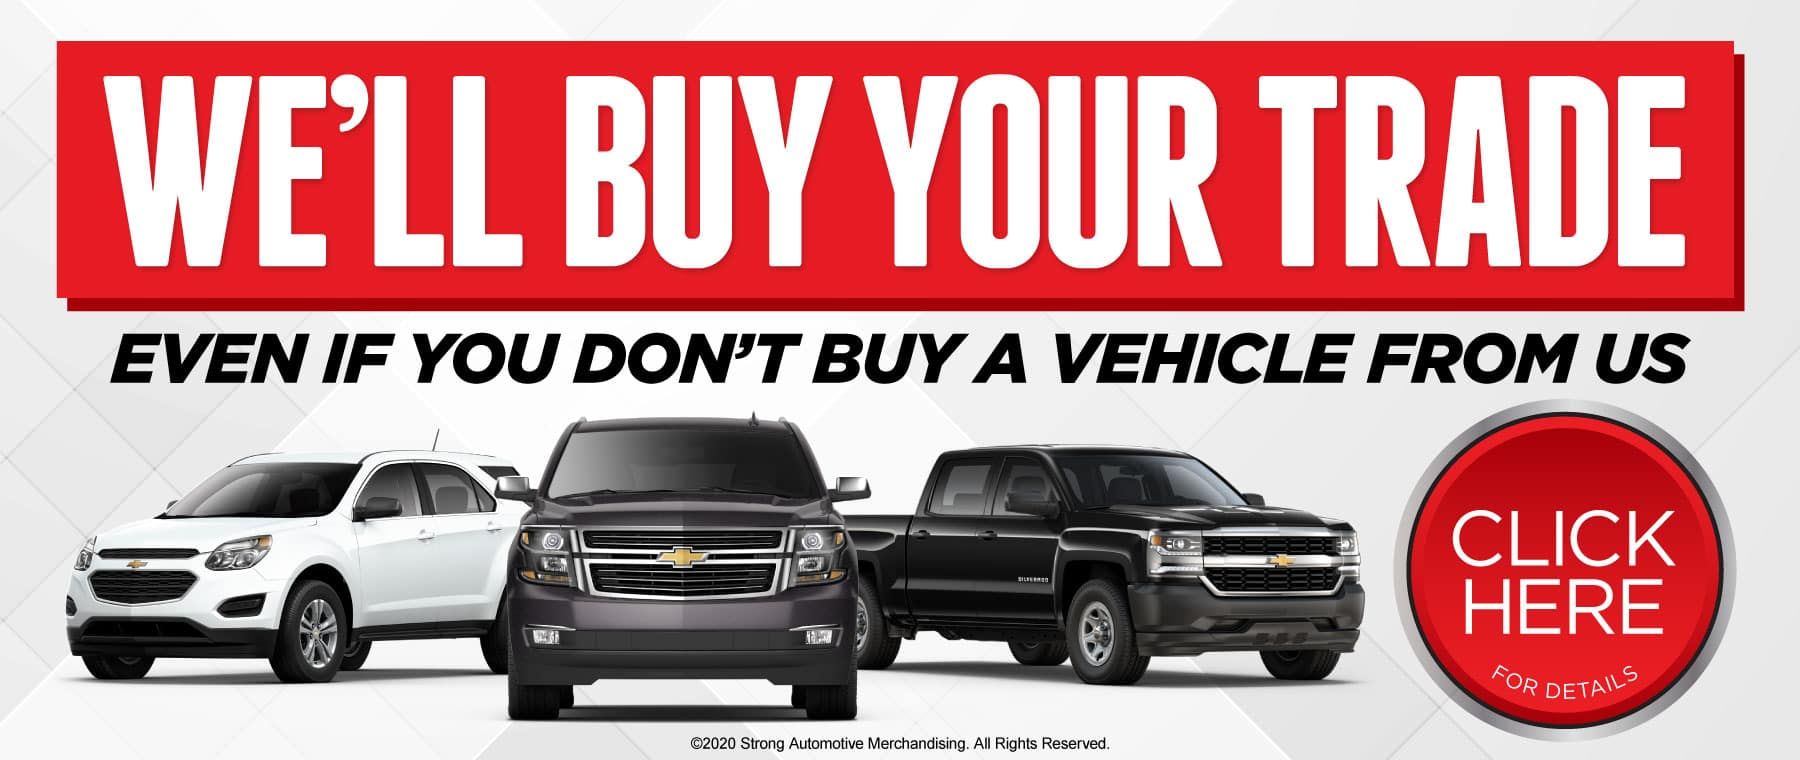 We'll Buy Your Trade even if you don't buy a vehicle from us - CLICK HERE